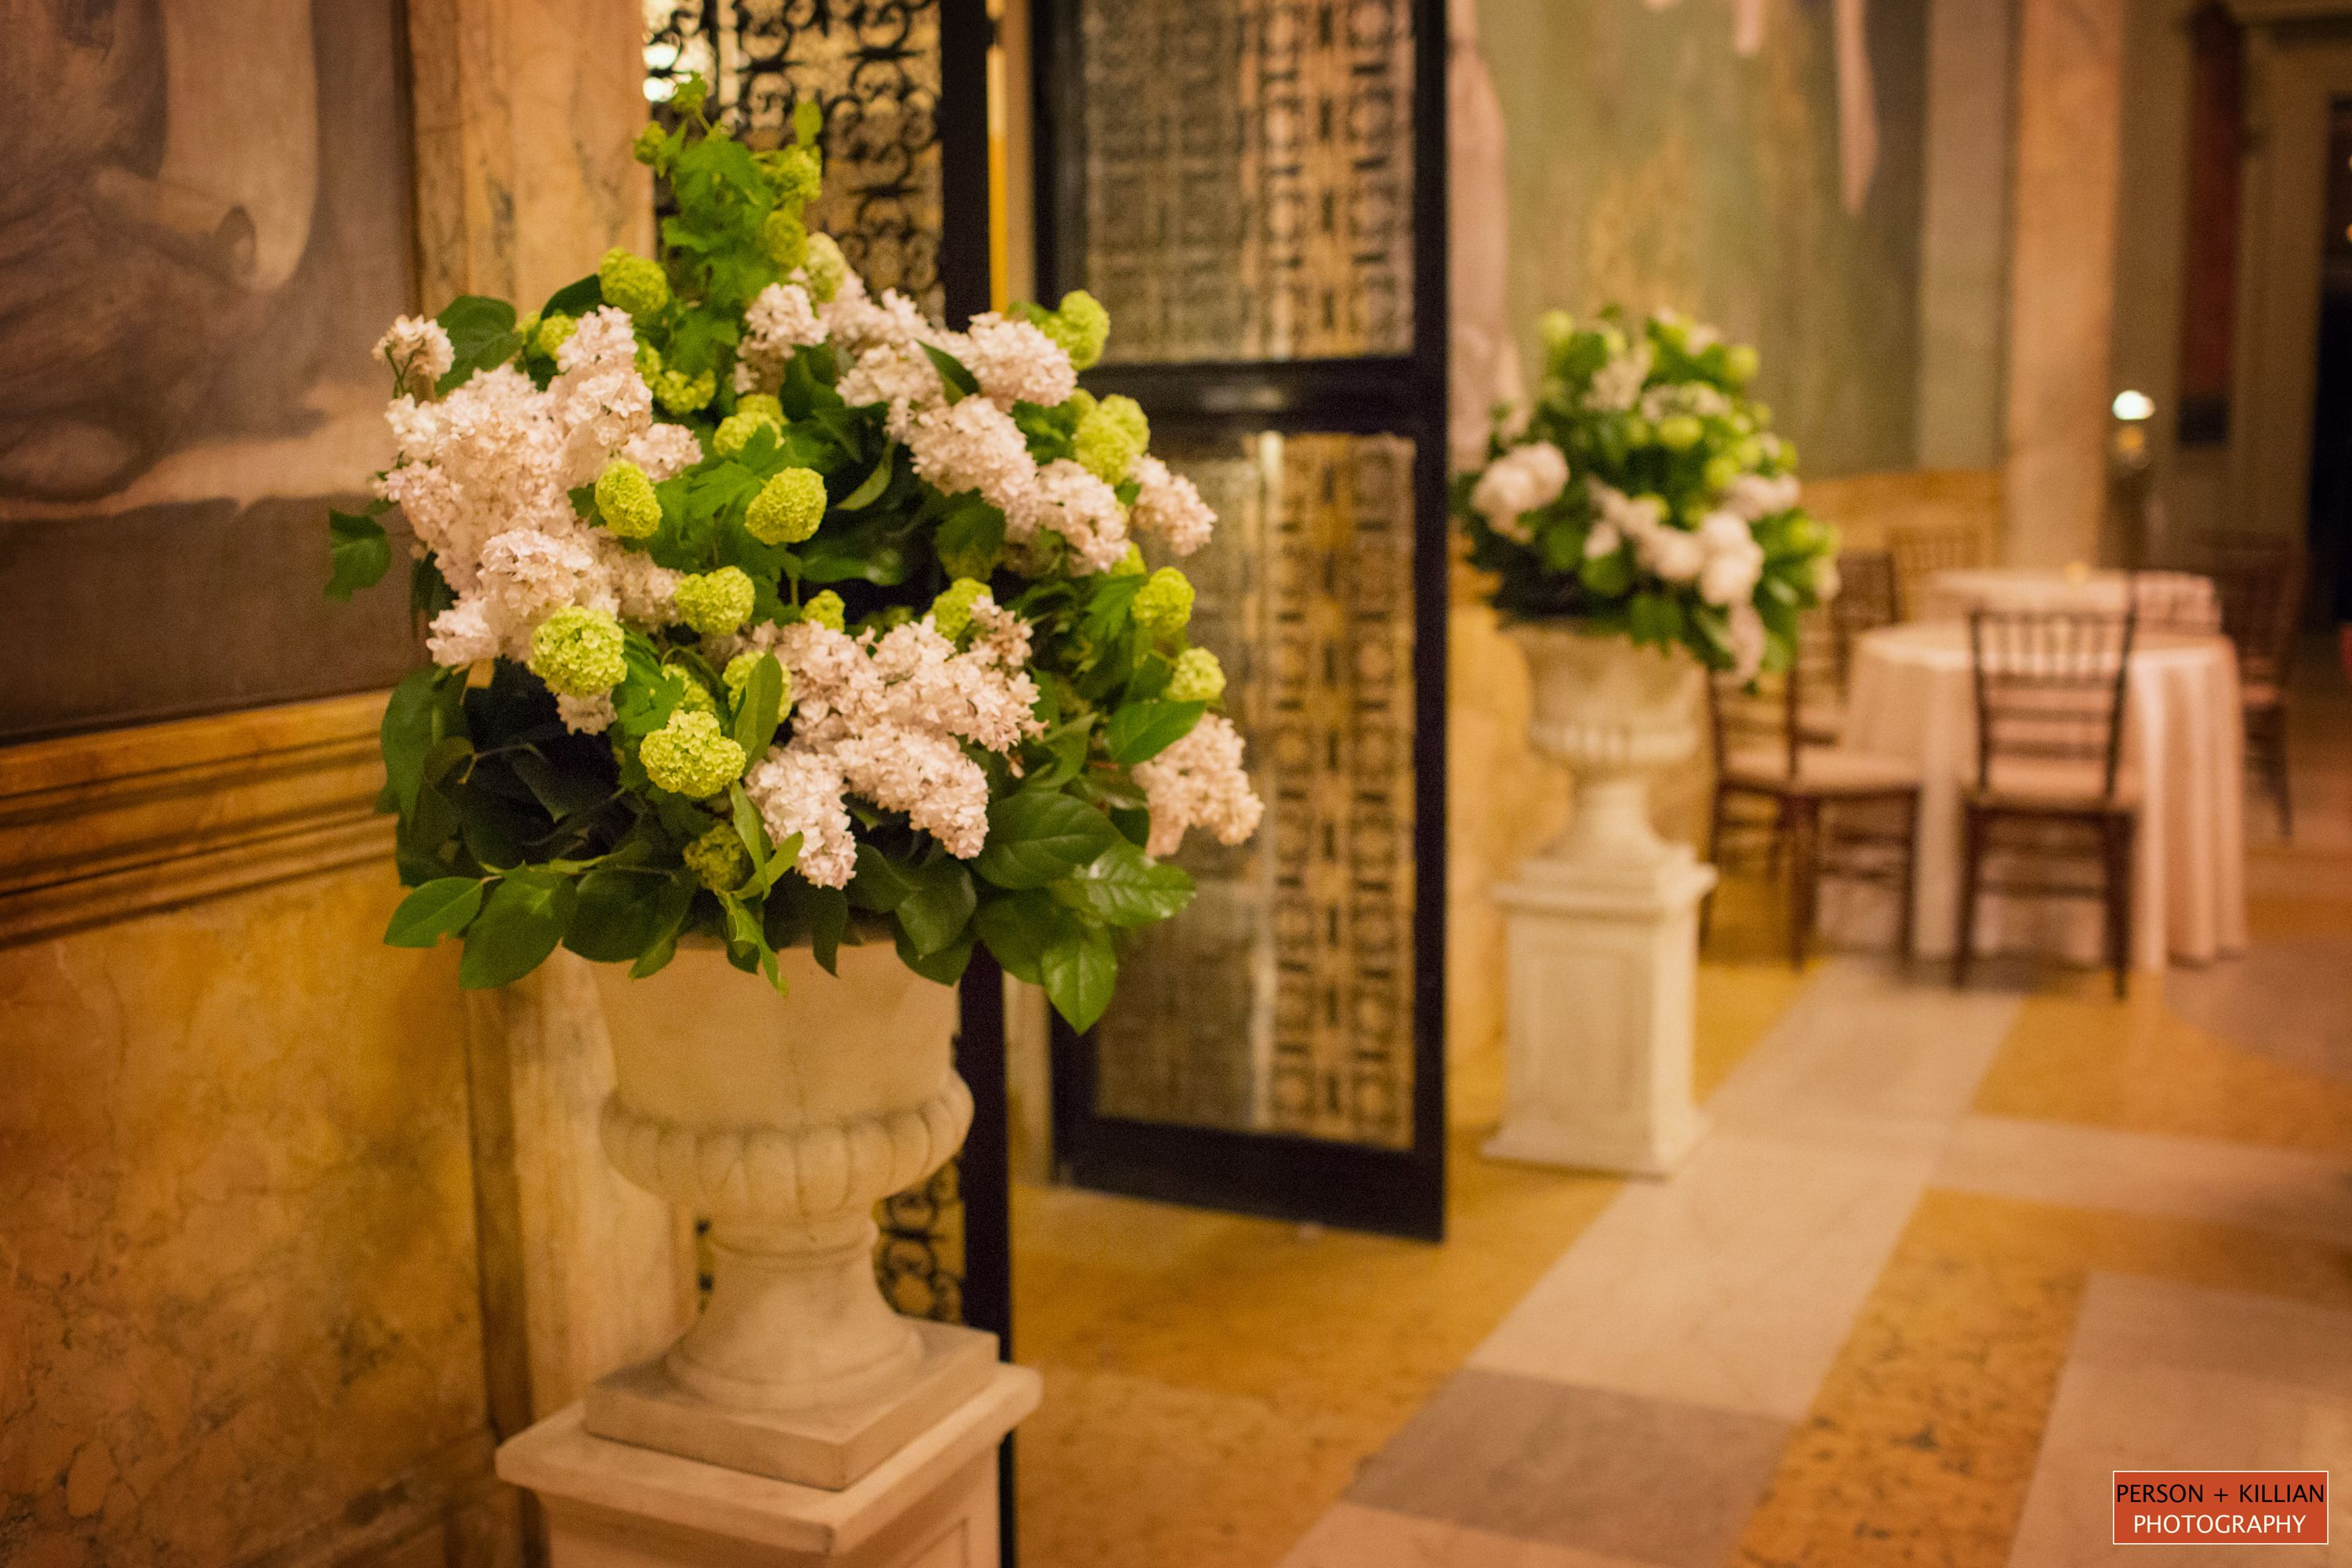 Flowers By Table U0026 Tulip, White And Green Wedding Flowers, Impressive  Floral Display, Boston Wedding Photography, Boston Event Photography, Boston  Public ...